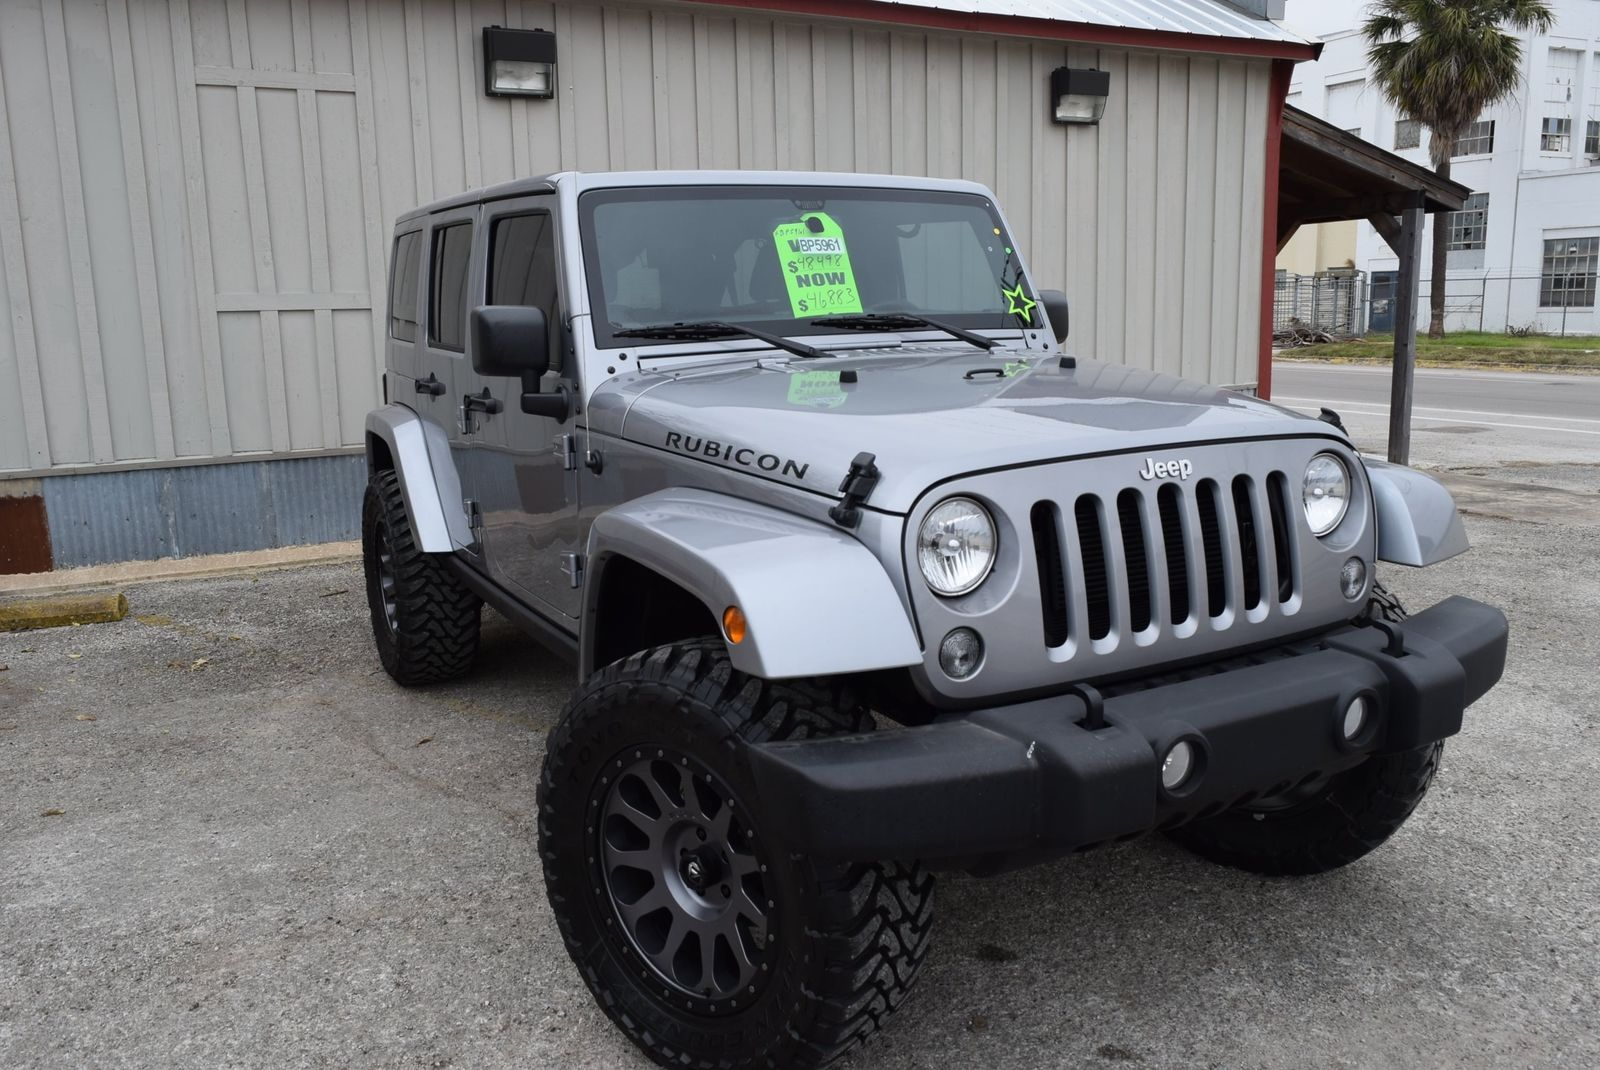 Silver Jeep Wrangler >> Awesome 2016 Jeep Wrangler Rubicon 4 4 2016 Jeep Wrangler Unlimited Rubicon 4 4 Billet Silver Suv V 6 Cyl Automatic 2017 2018